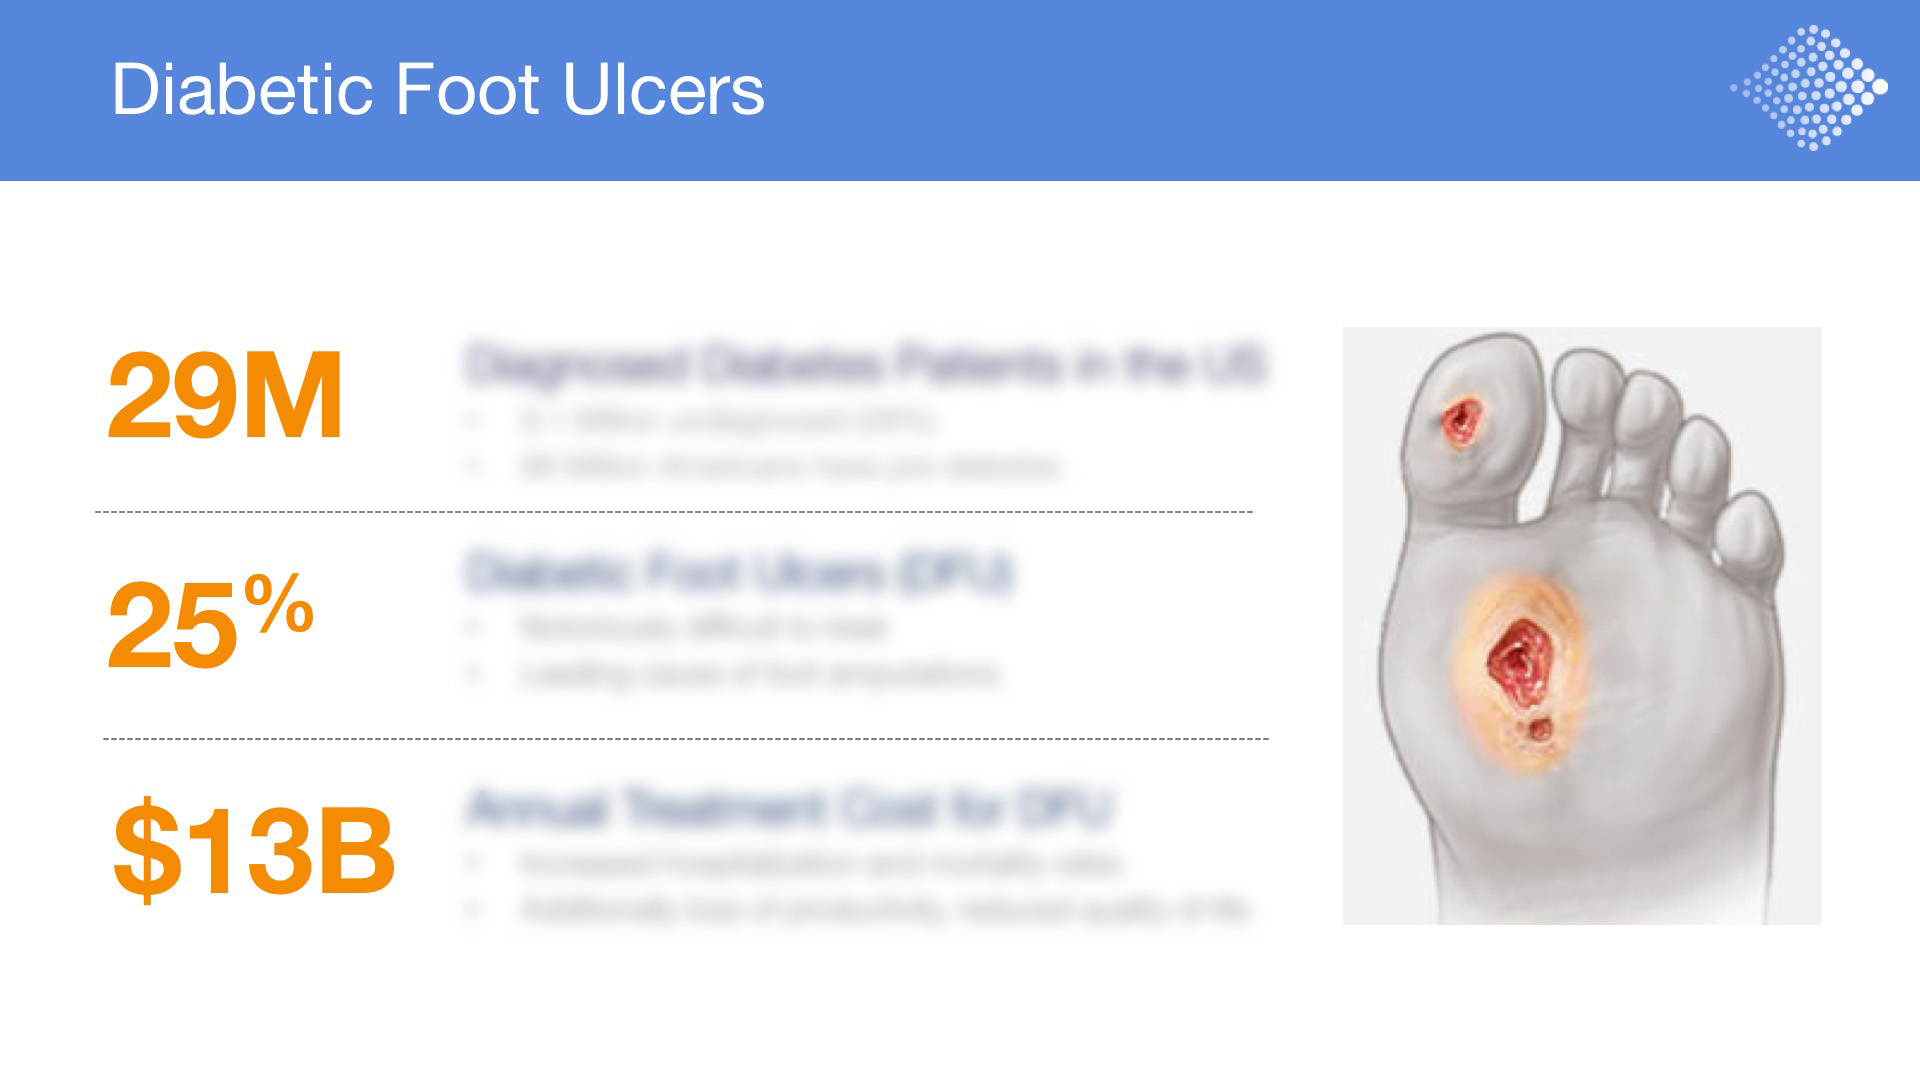 Modulated Imaging Corporate Deck - Diabetic Foot Ulcers Medical Illustrations